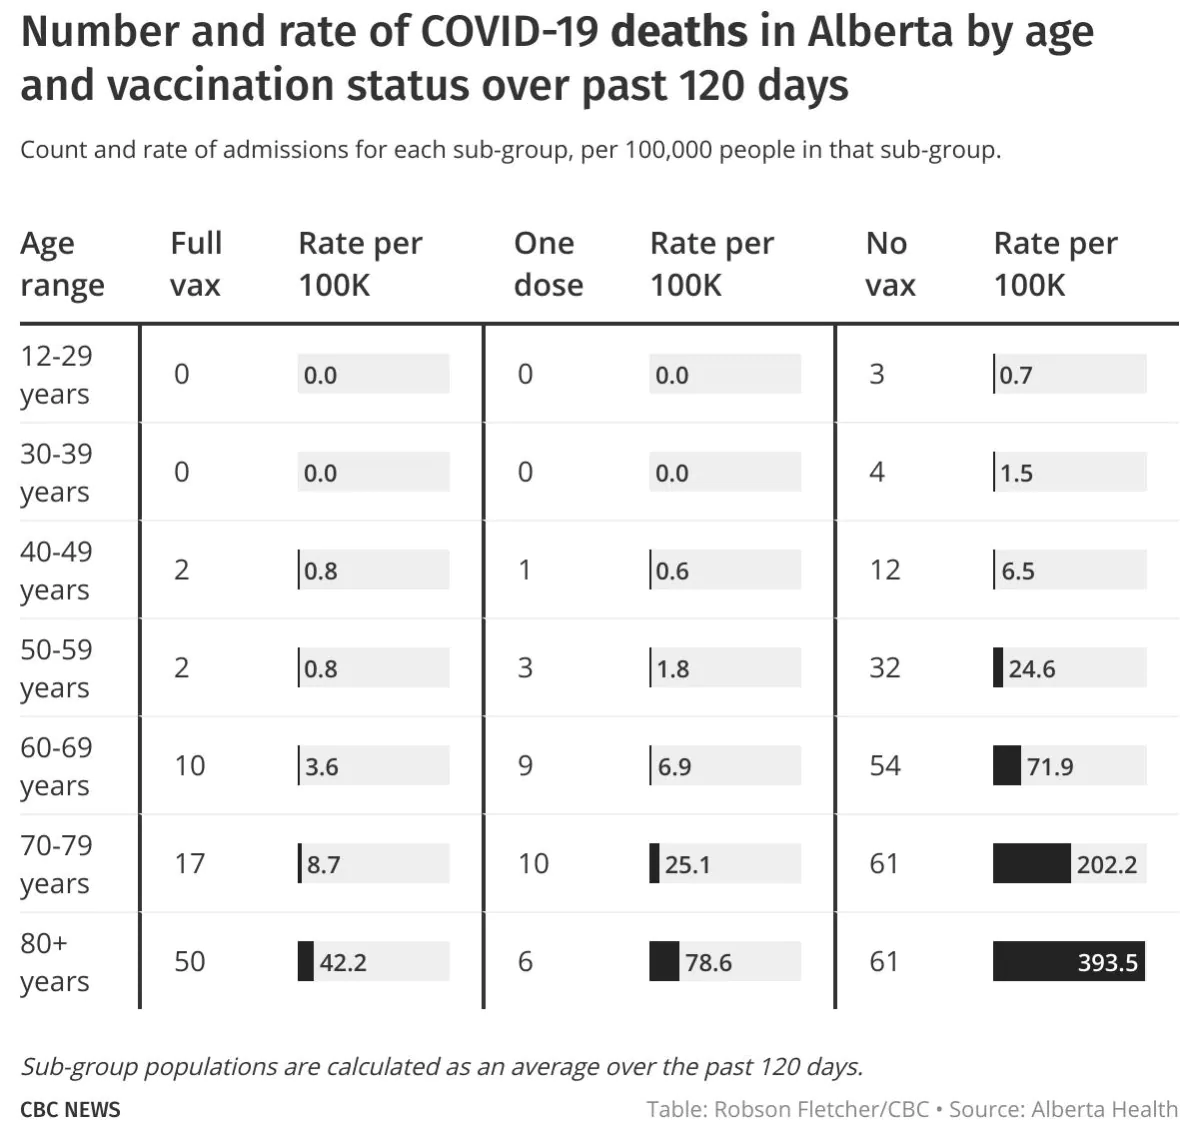 vax-outcomes-deaths-by-age-alberta.png